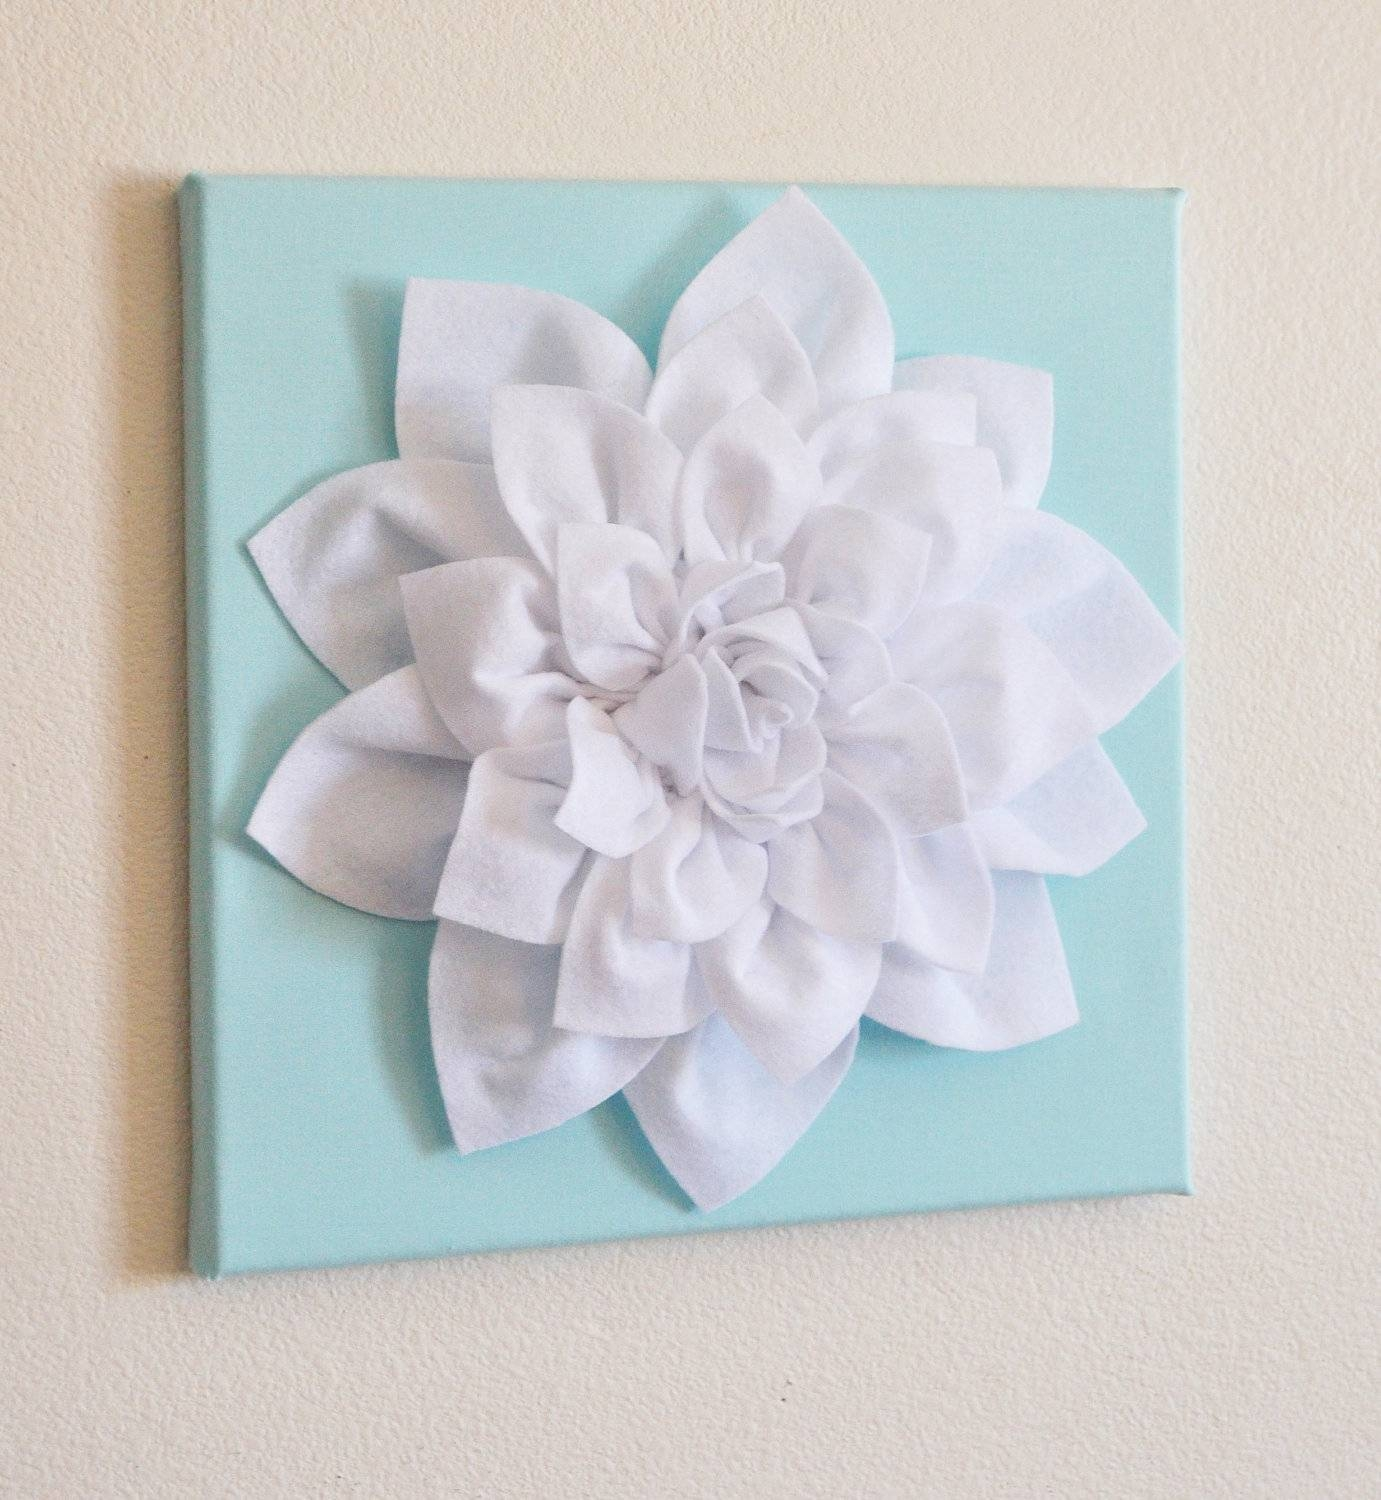 Zspmed Of 3d Flower Wall Art With Regard To Most Current 3d Flower Wall Art (View 6 of 20)